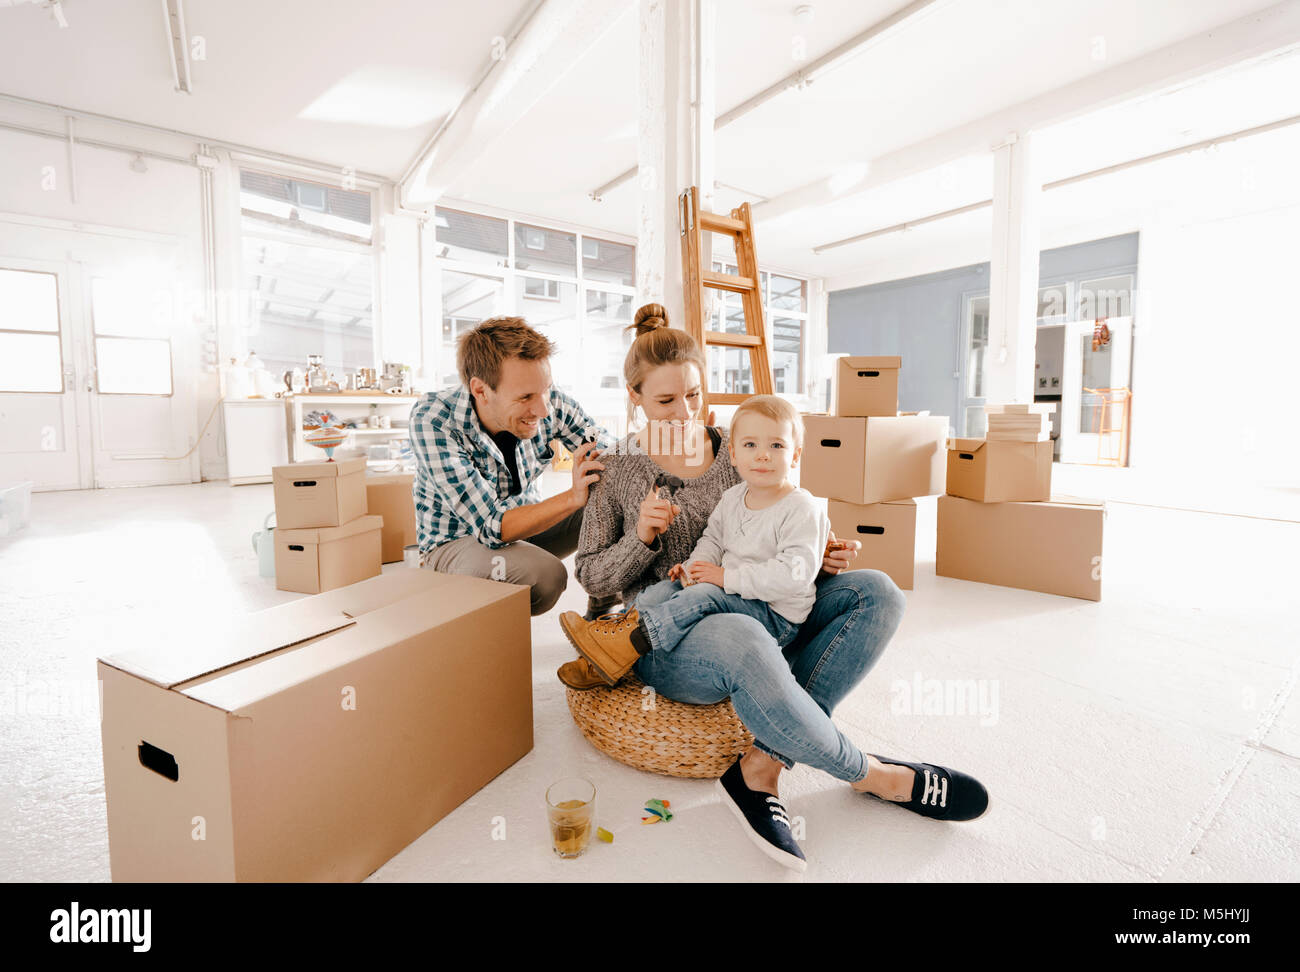 Happy family moving into new home - Stock Image